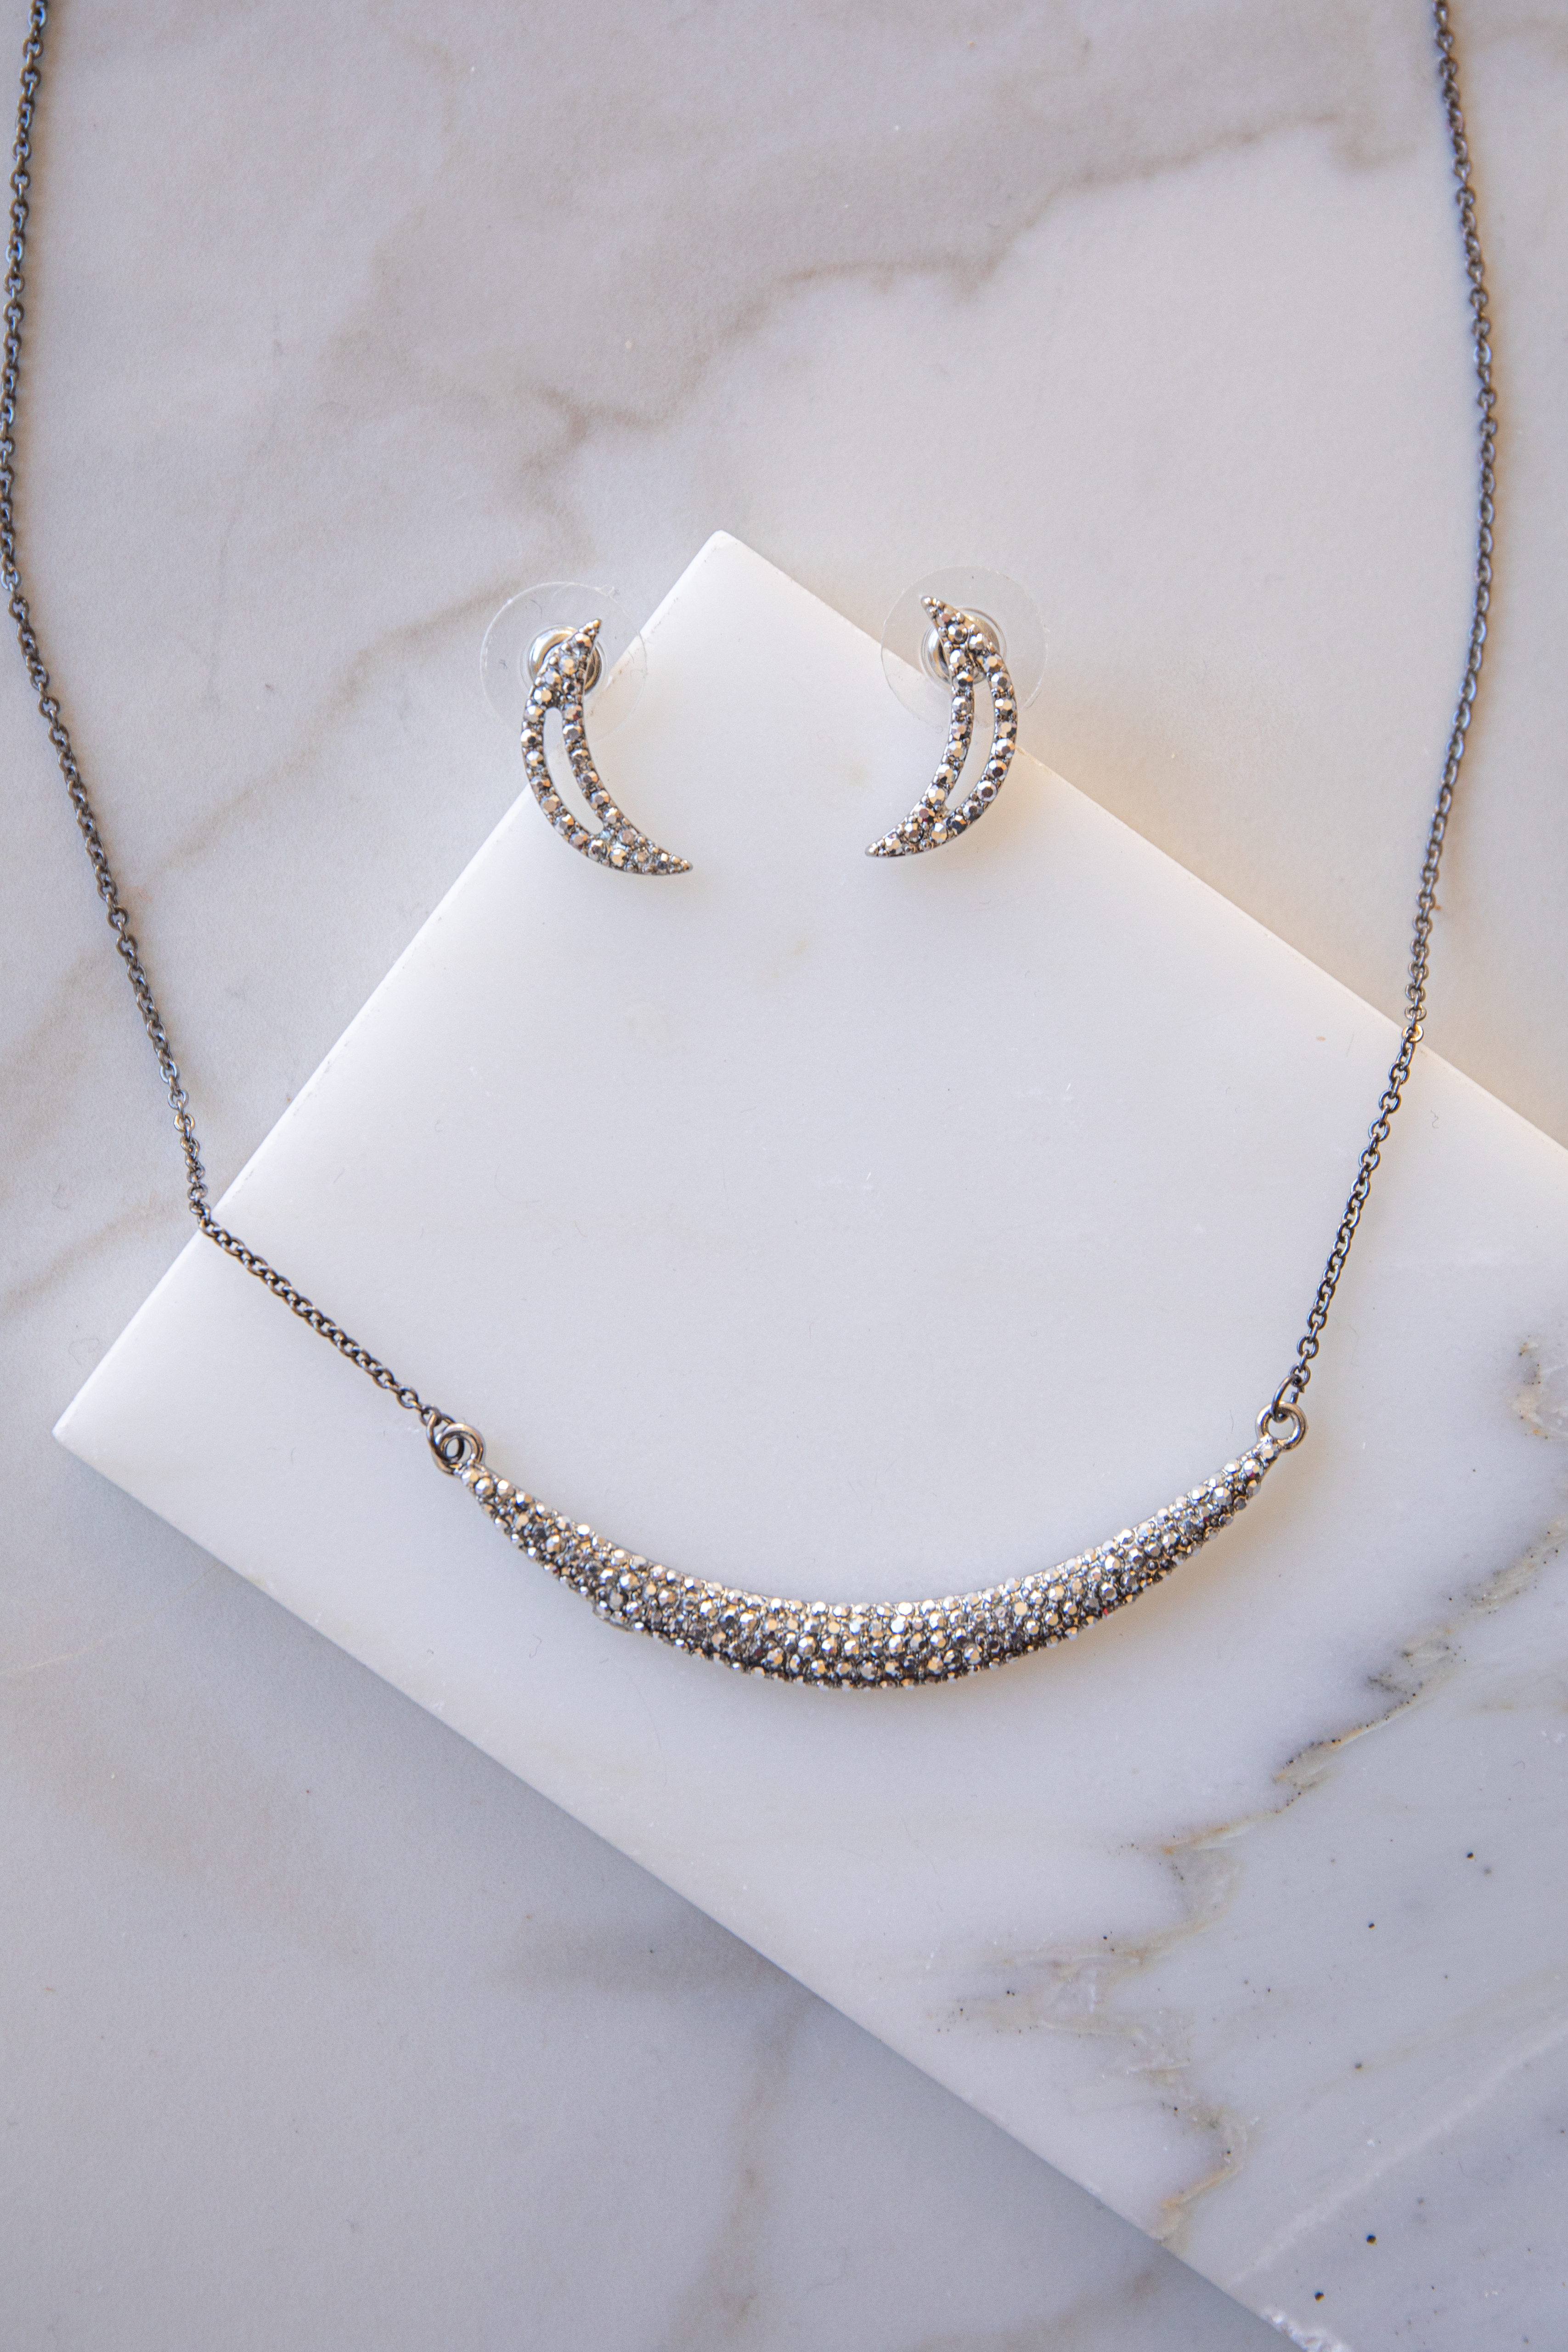 Silver Necklace with Rhinestone Pendant and Earrings Set